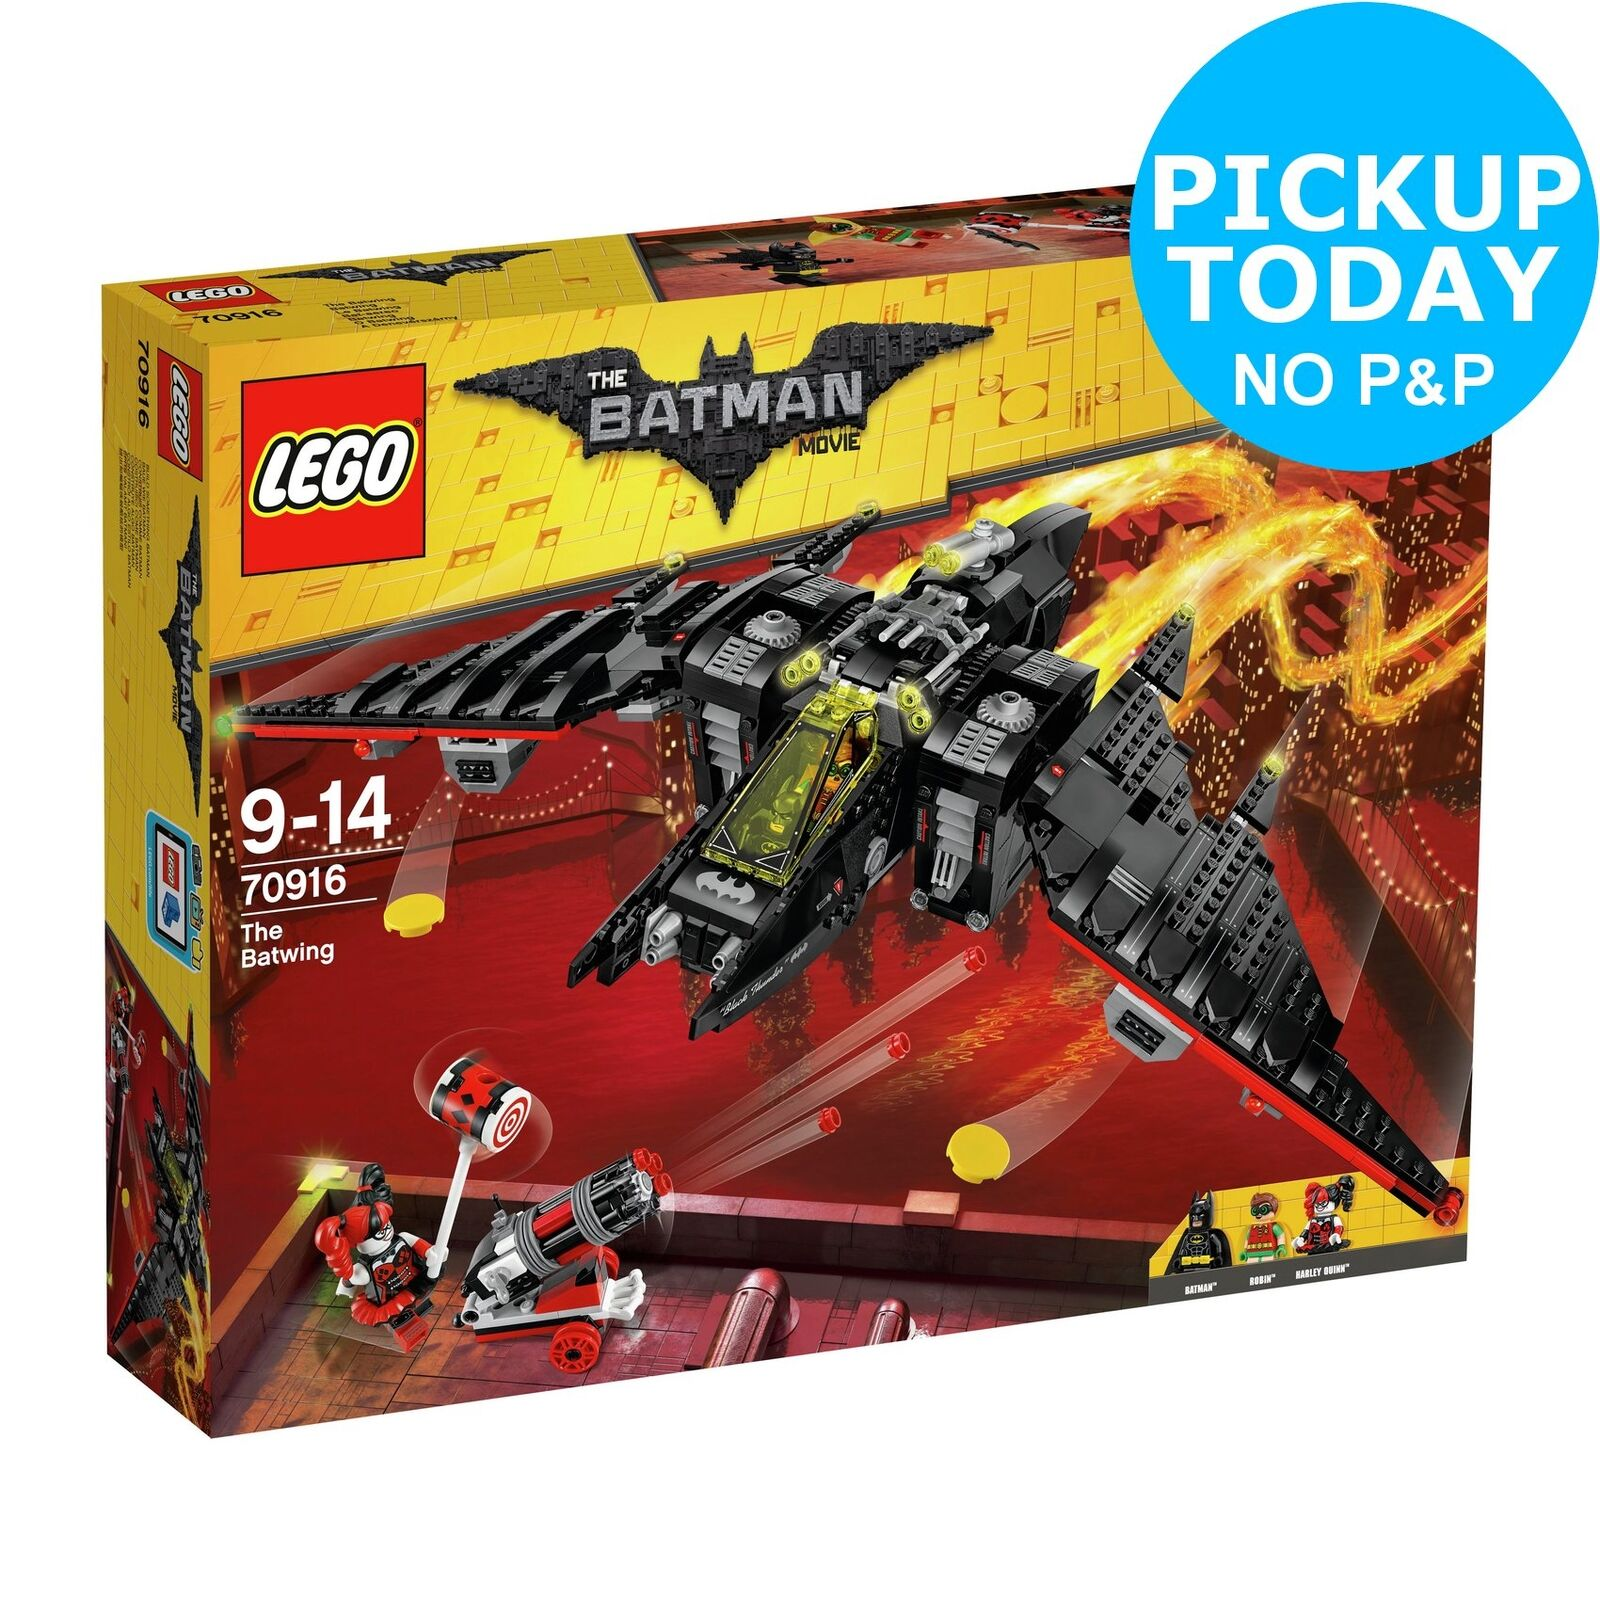 Lego The Batman Batwing Vehicle Playset 9 Years 70916 Movie